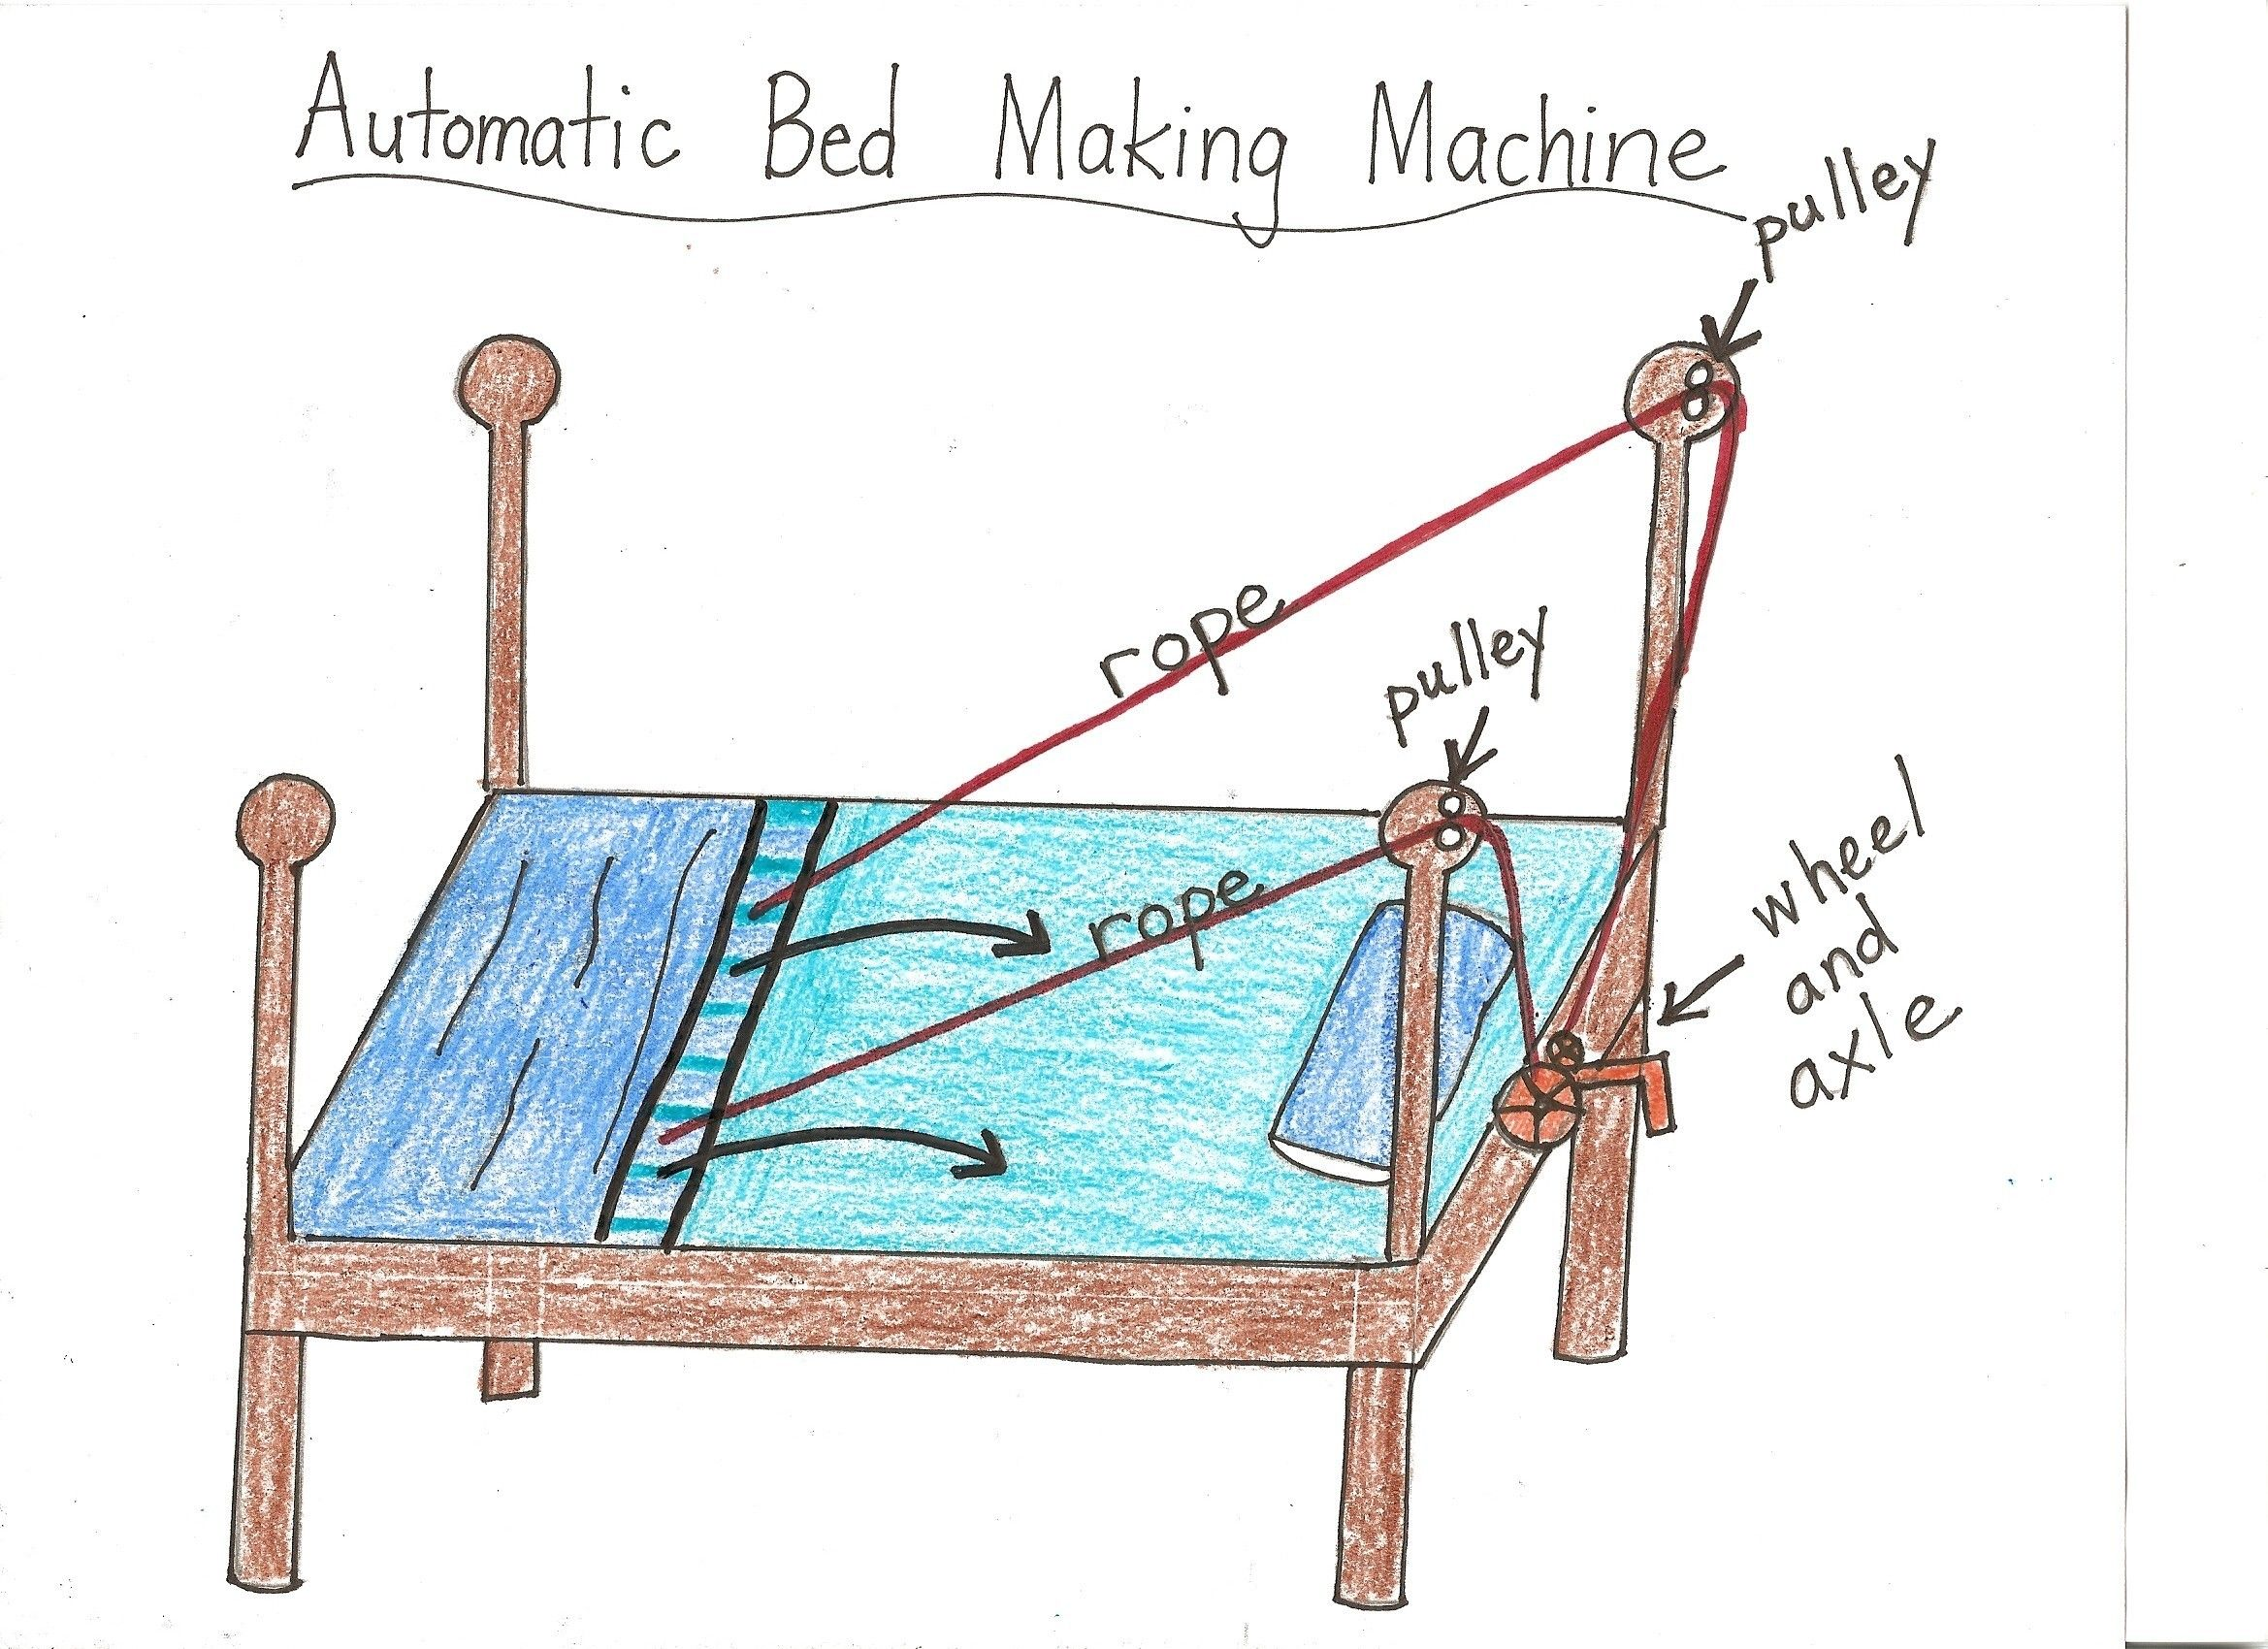 Bed Making Machine Maybe Simple Machine Ideas For 4th